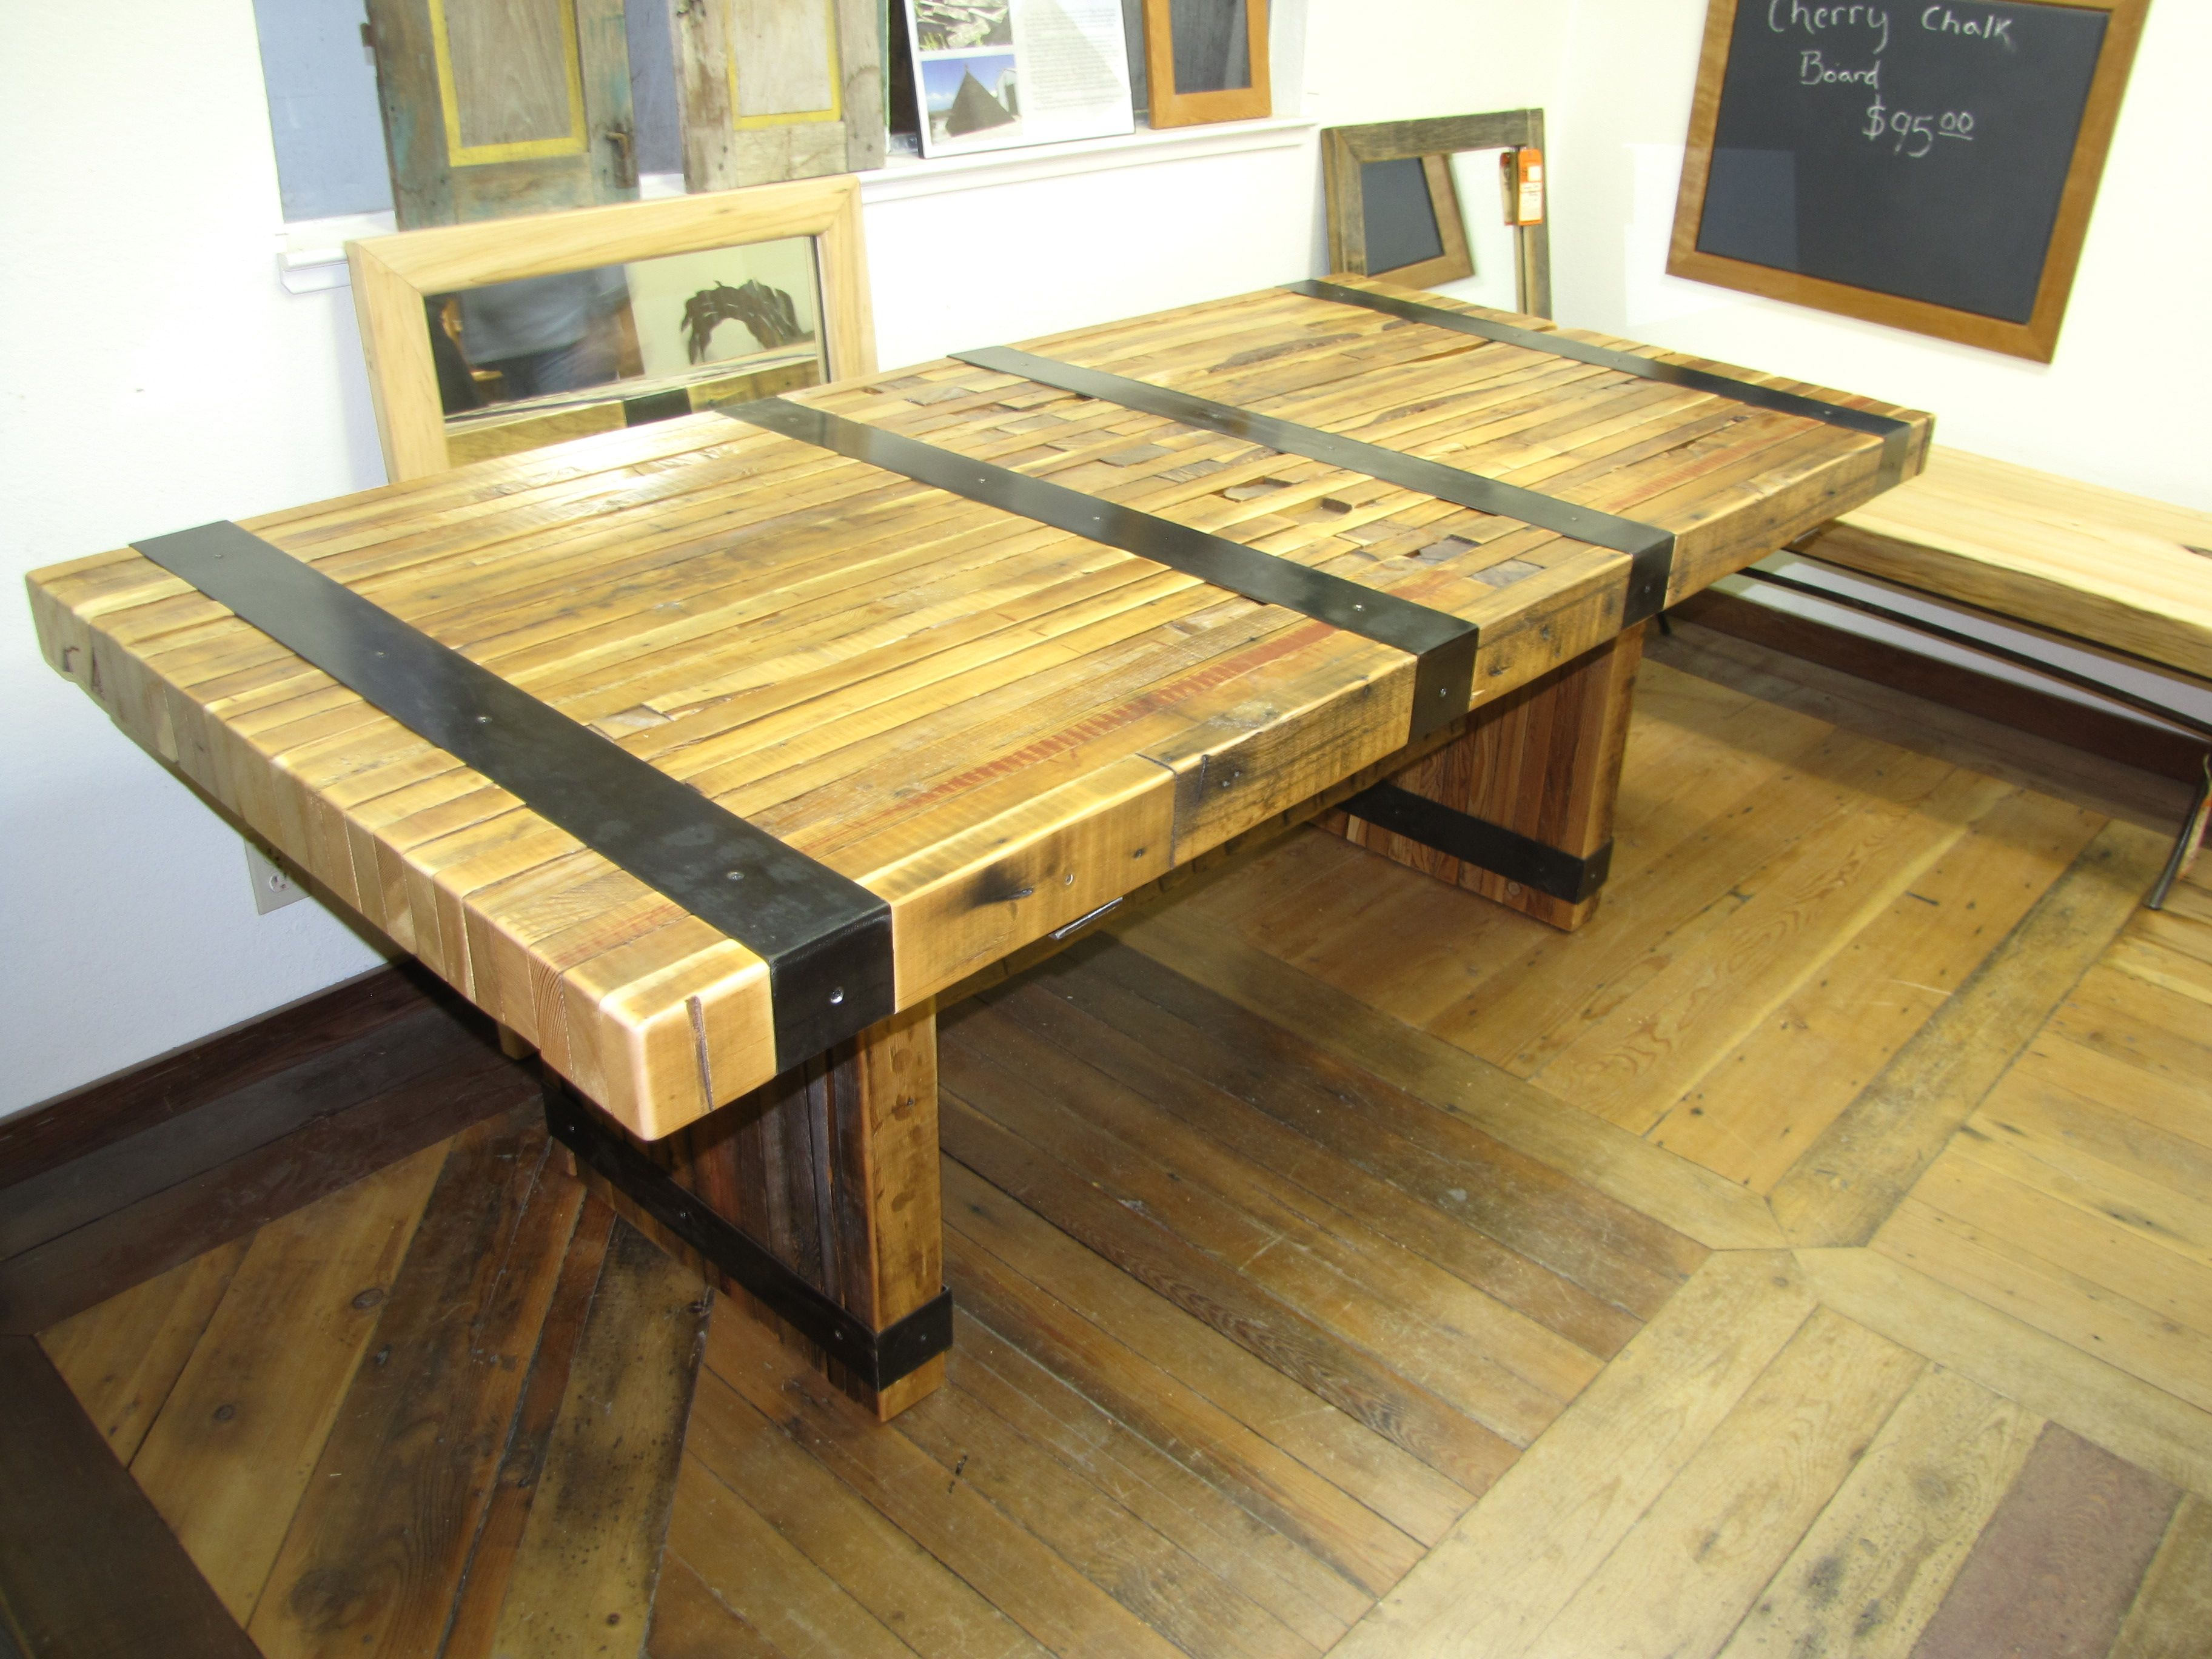 This Medieval Table Was Made From The Crib Walls Of An Old Grain Elevator!